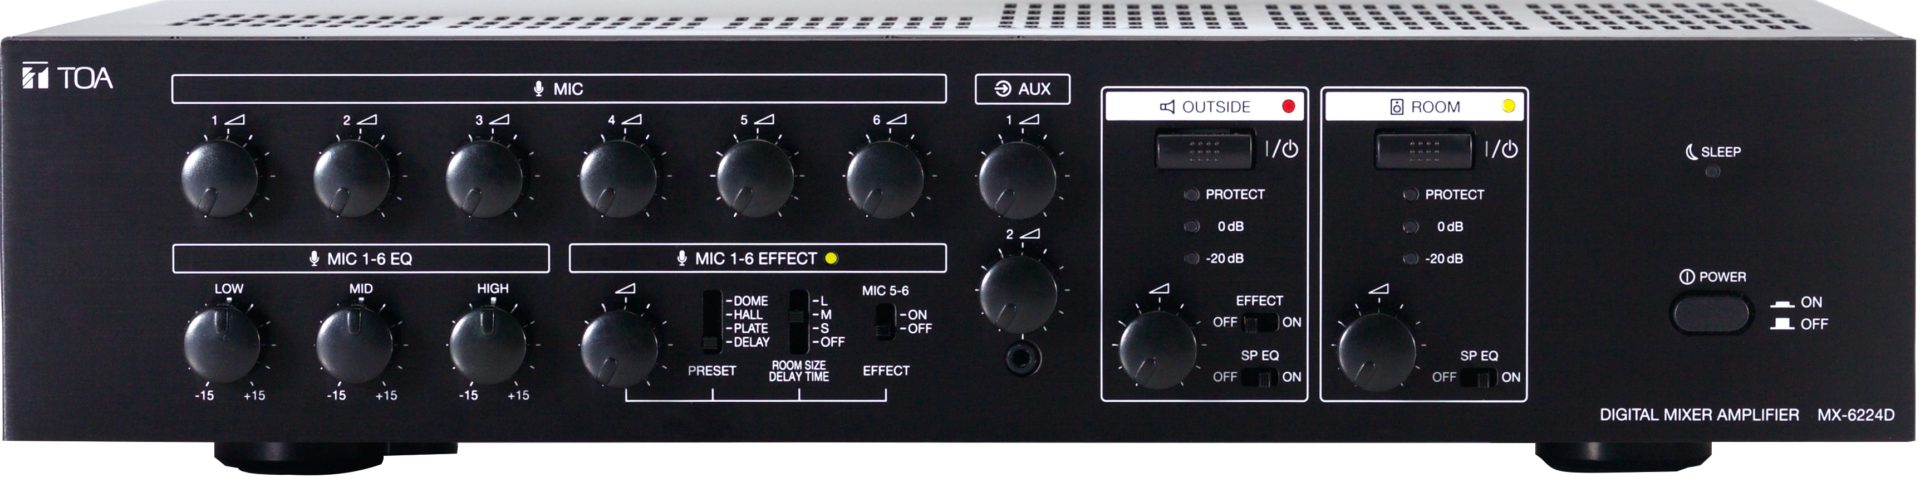 Toa Mx 6224d Digital Mixer Amplifier Audio Visual